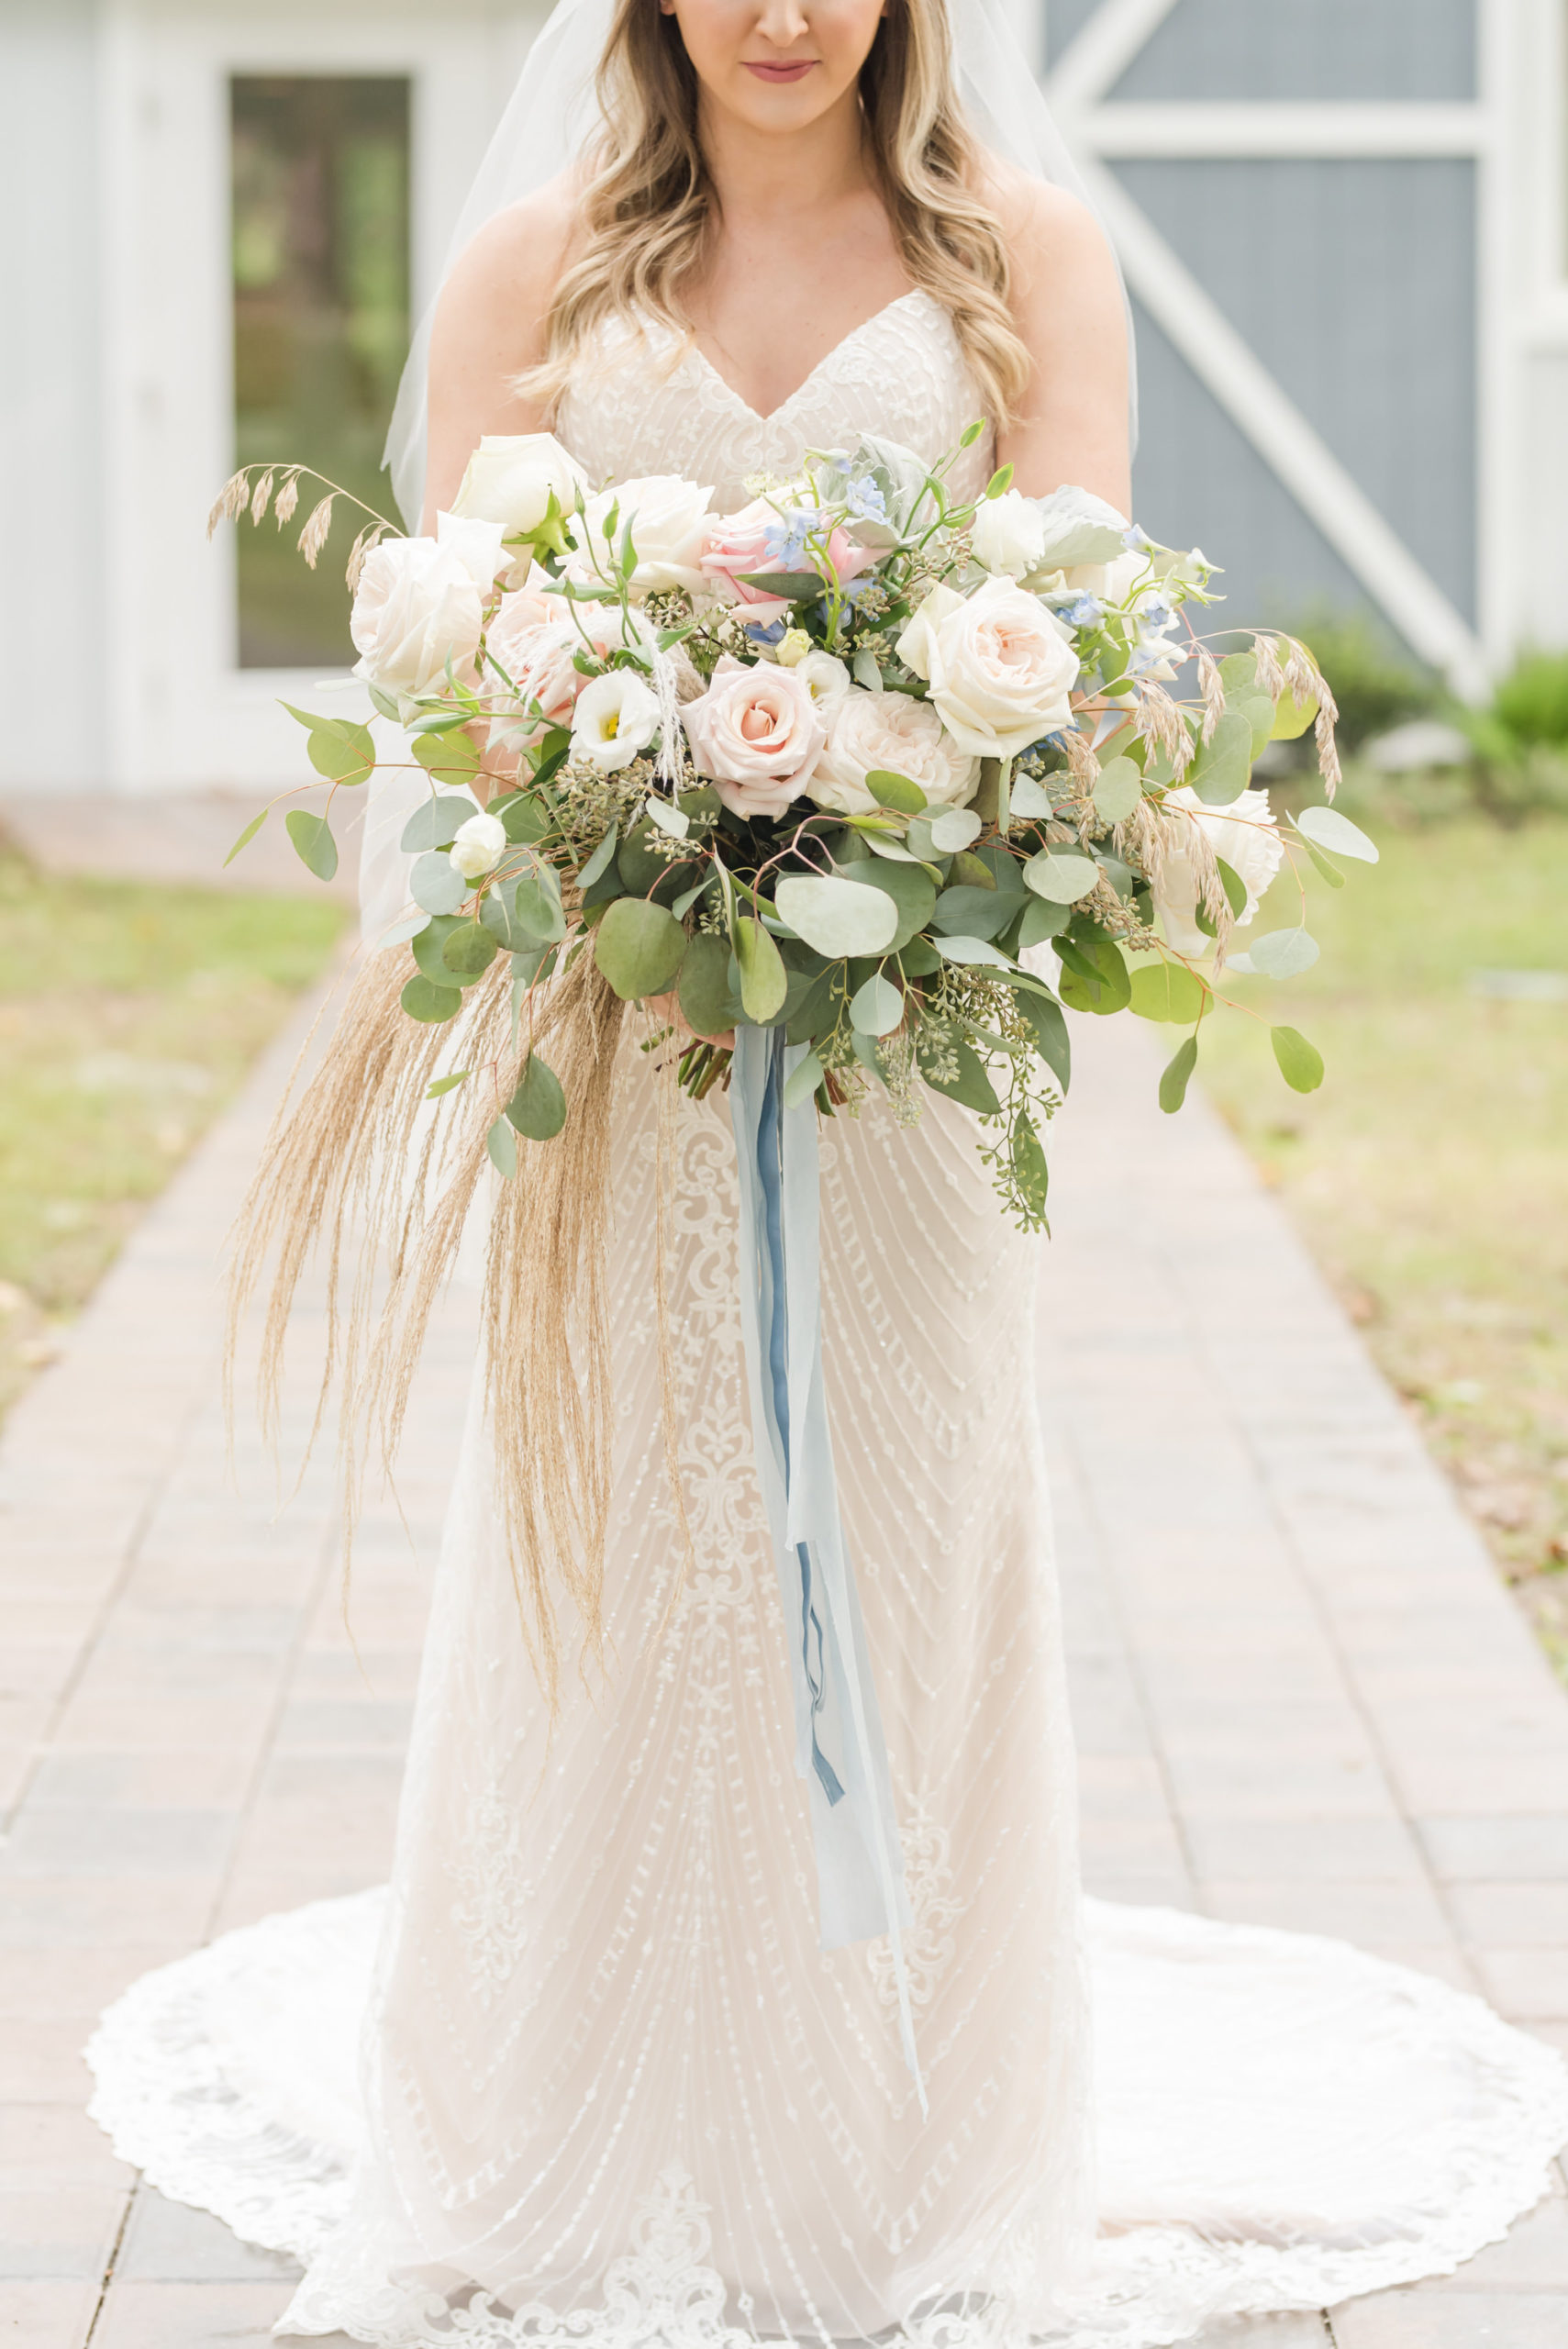 Florida Bride Holding Vintage Meets Rustic Bridal Bouquet with Light Pink Roses, Ivory Flowers, Dusty Rose Florals, Eucalyptus Leaves and Greenery, Pompous Grass, Dusty Blue Ribbon, Wearing Romantic Beaded Wedding Dress   Tampa Bay Wedding Planner Elegant Affairs by Design